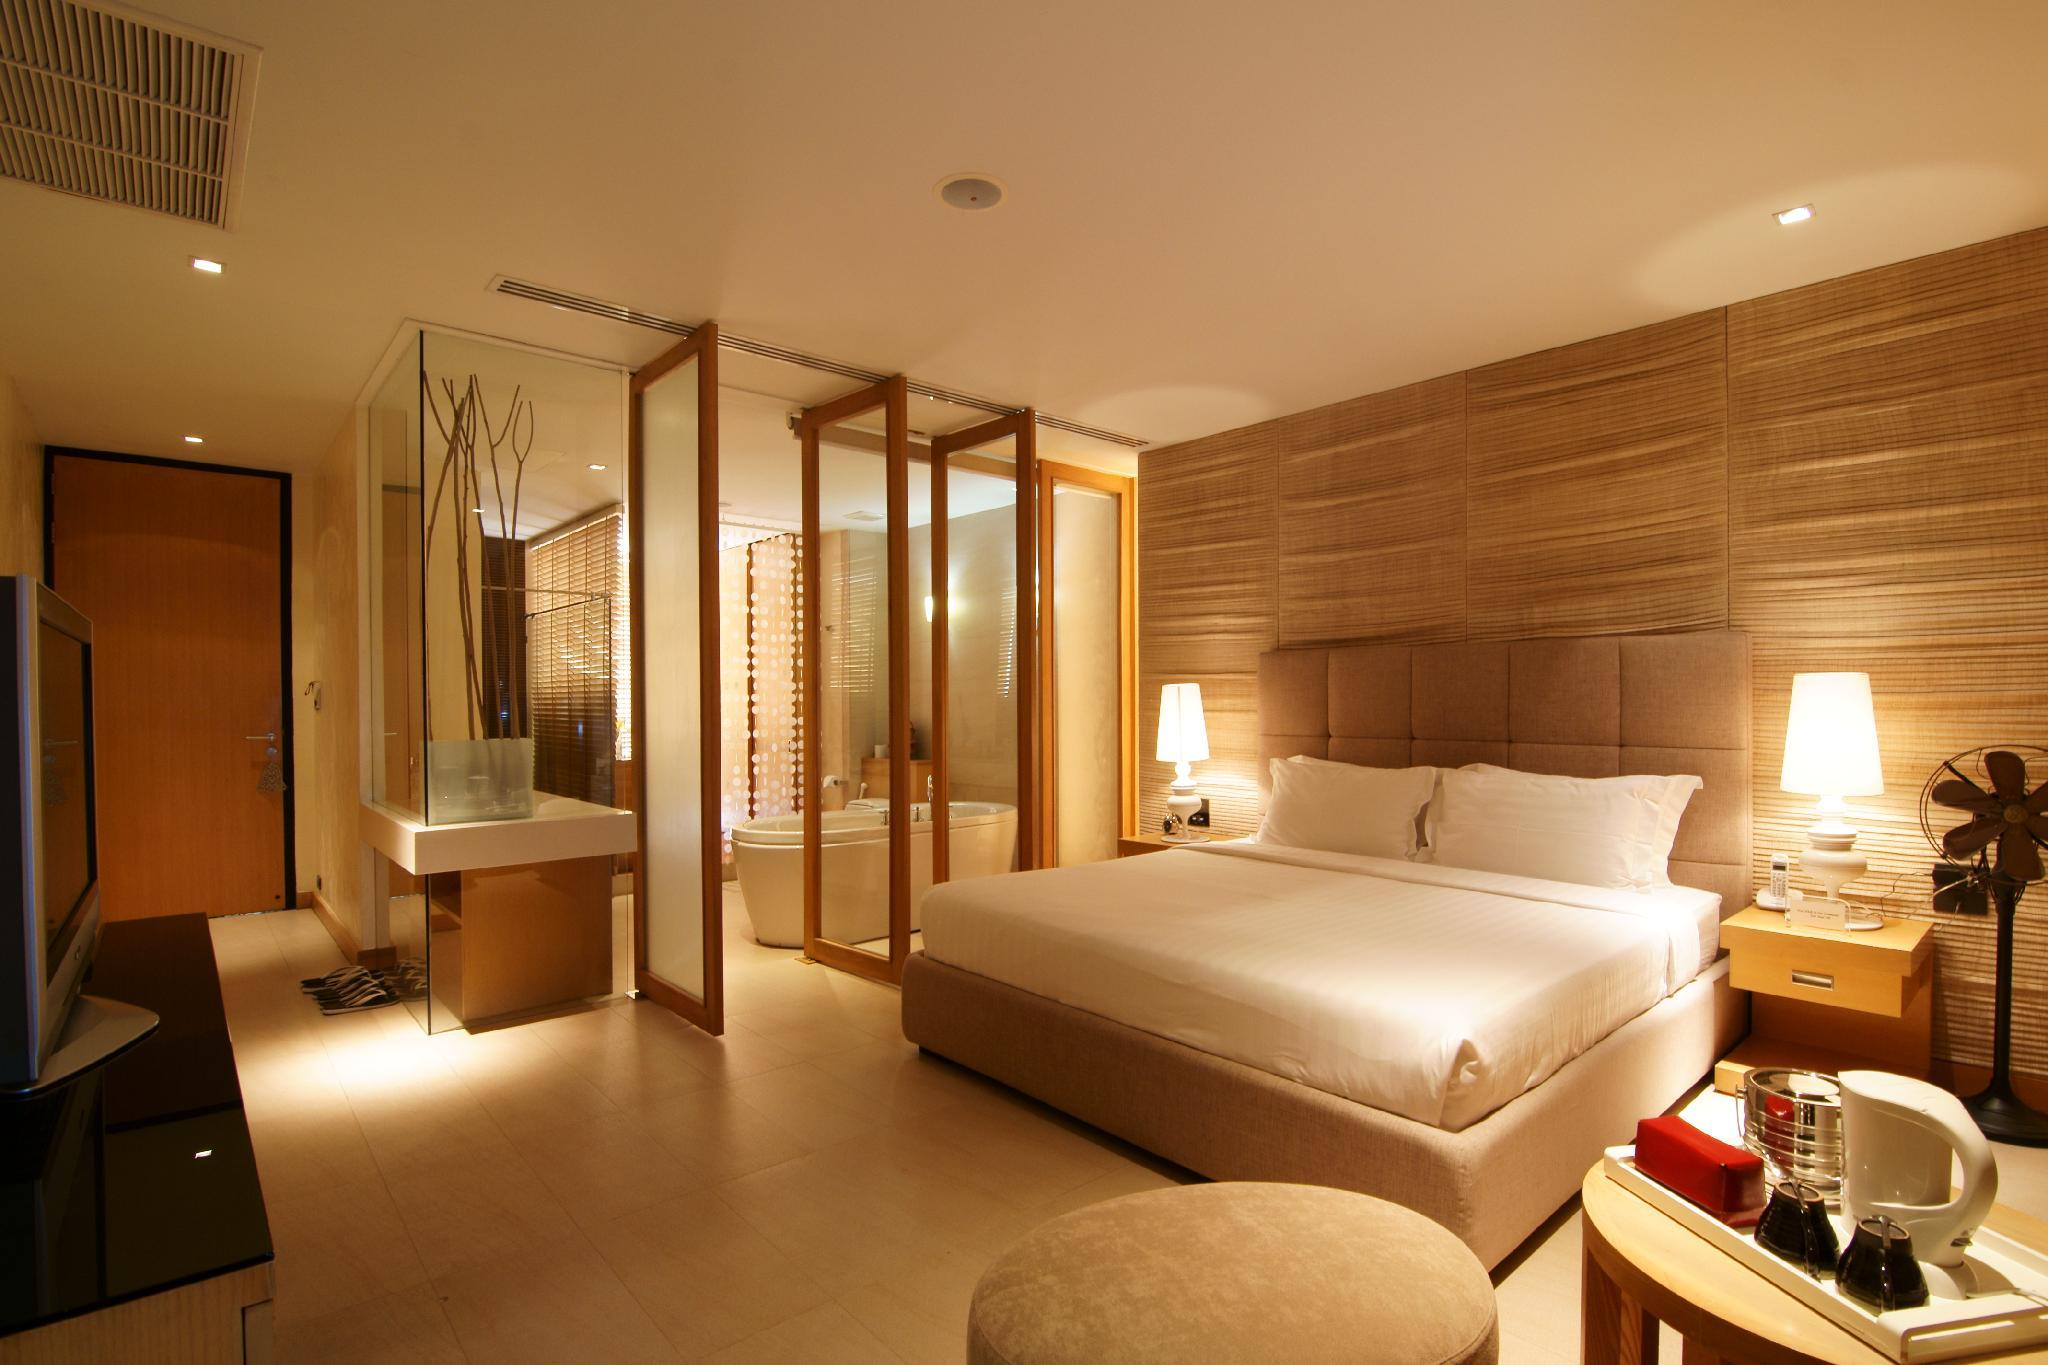 Luxury Room Shared Bed